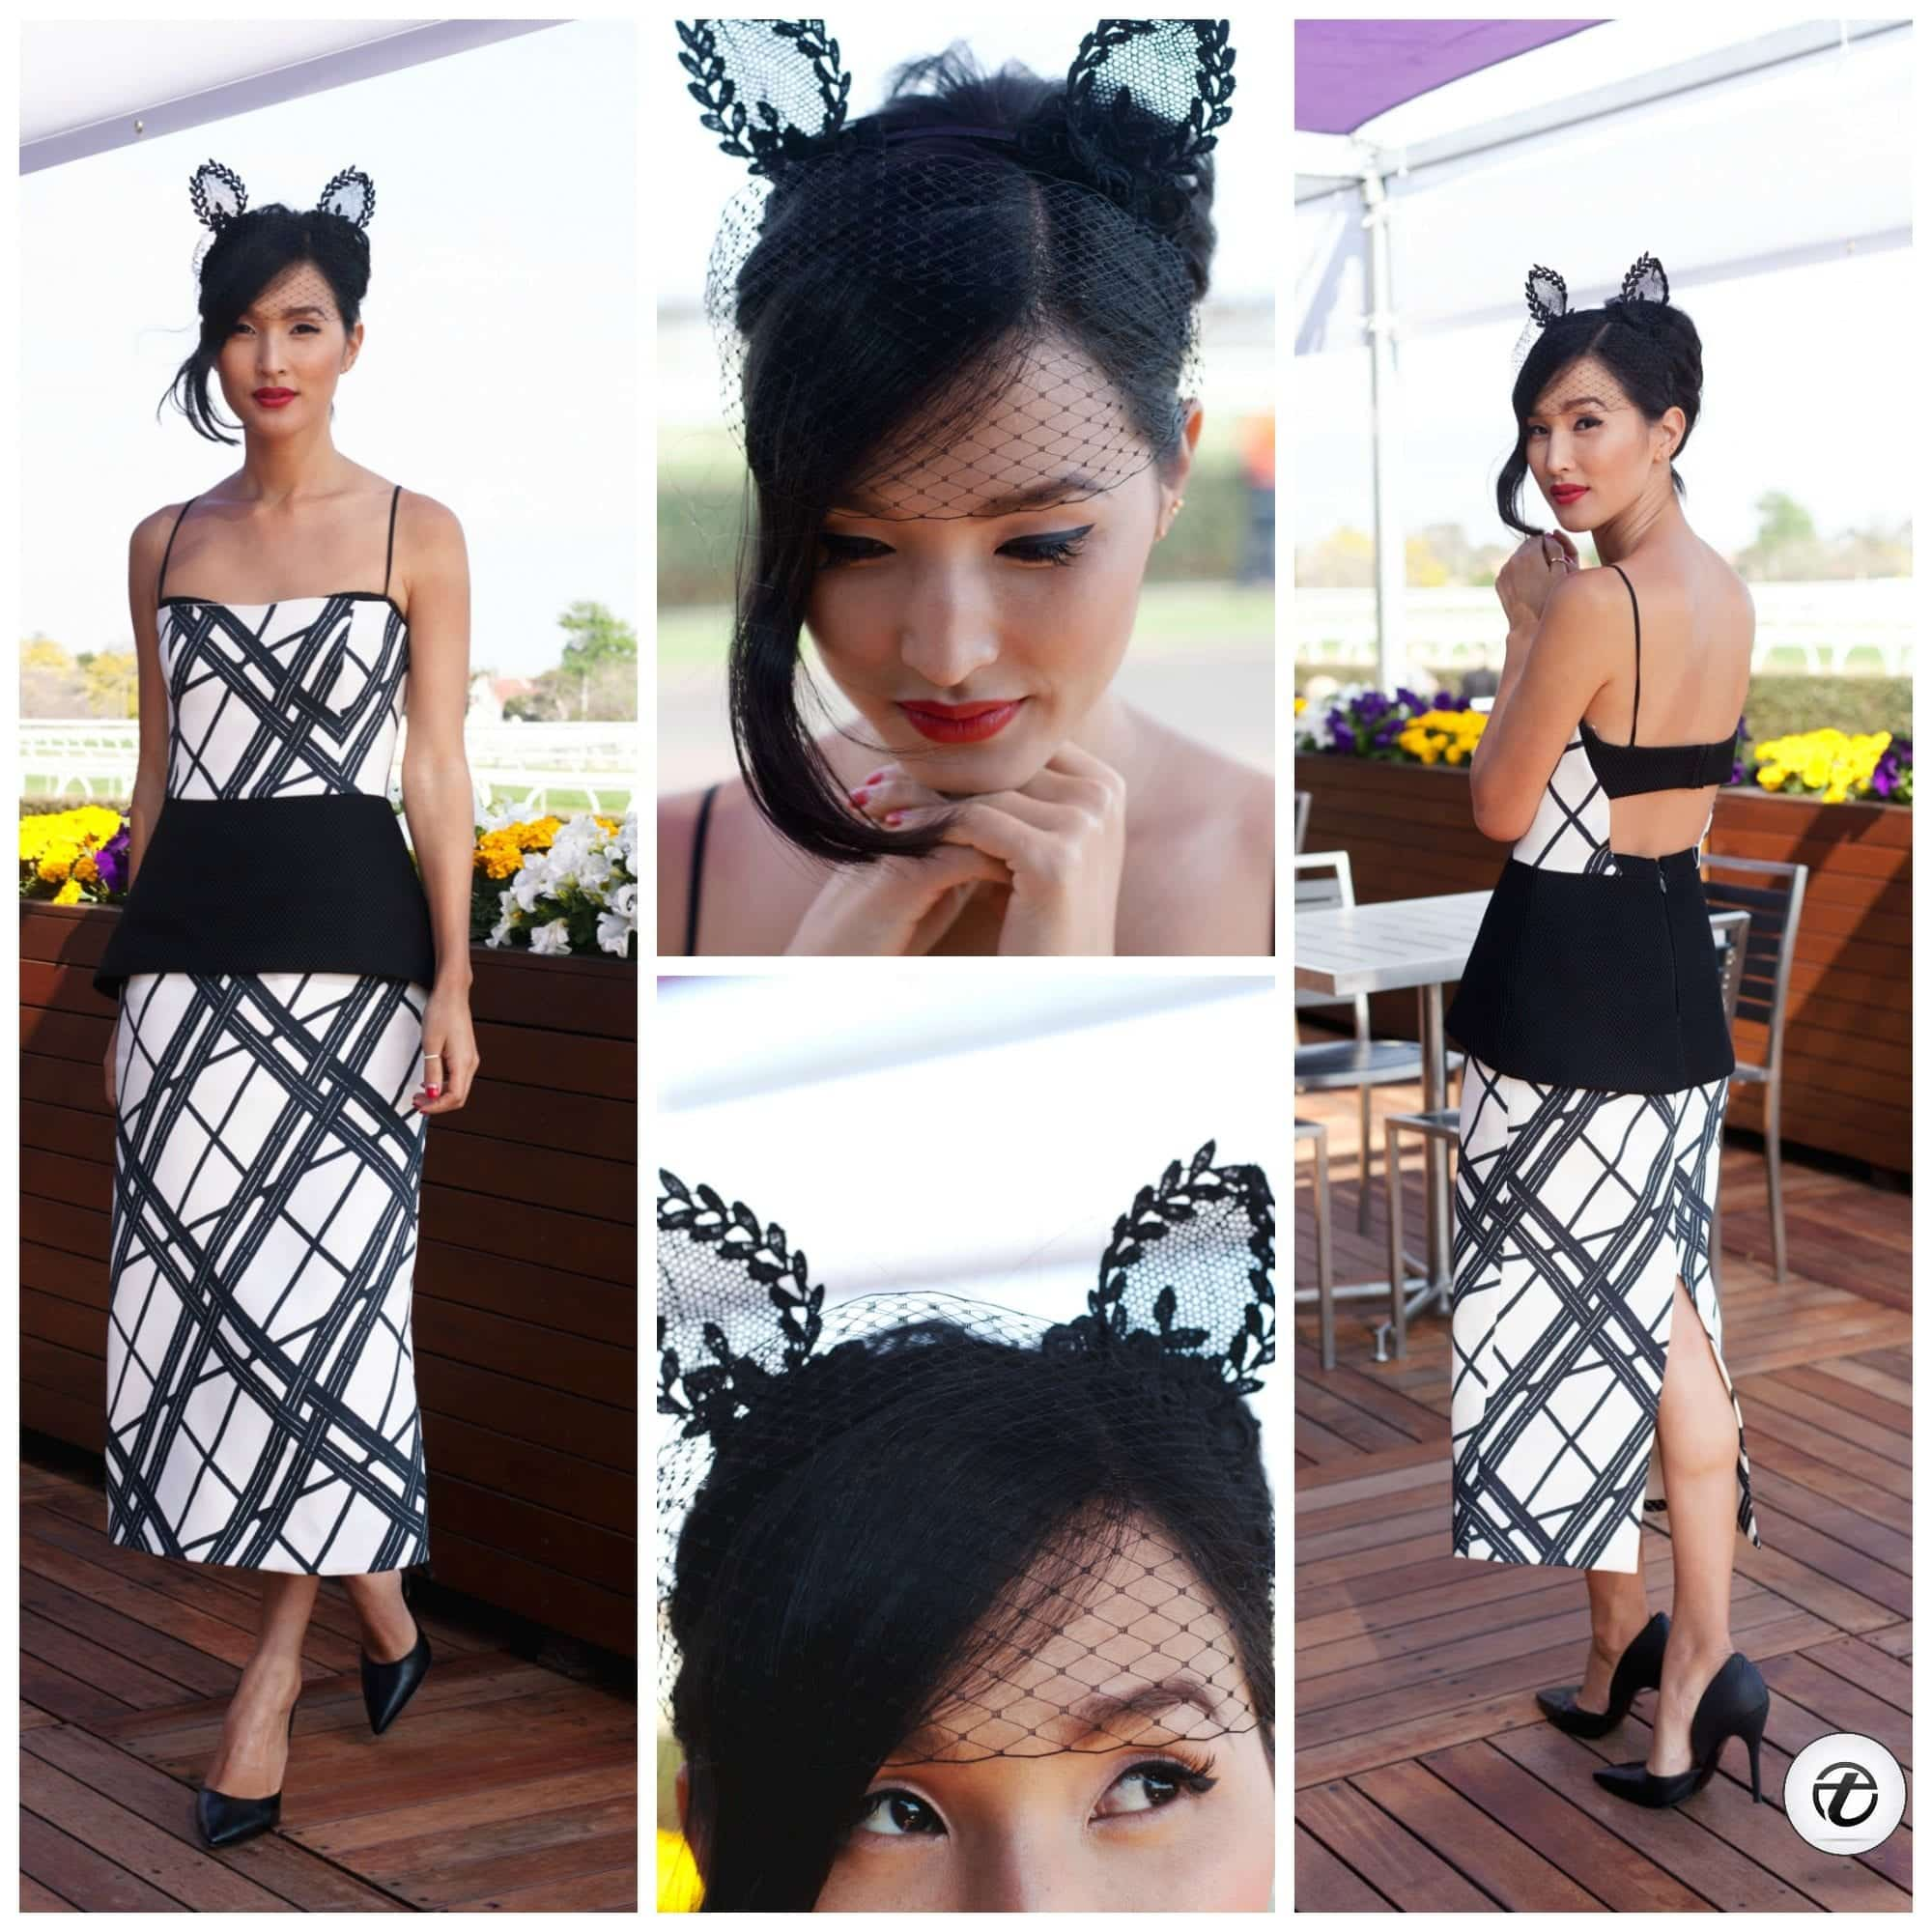 horse racing carnival outfit